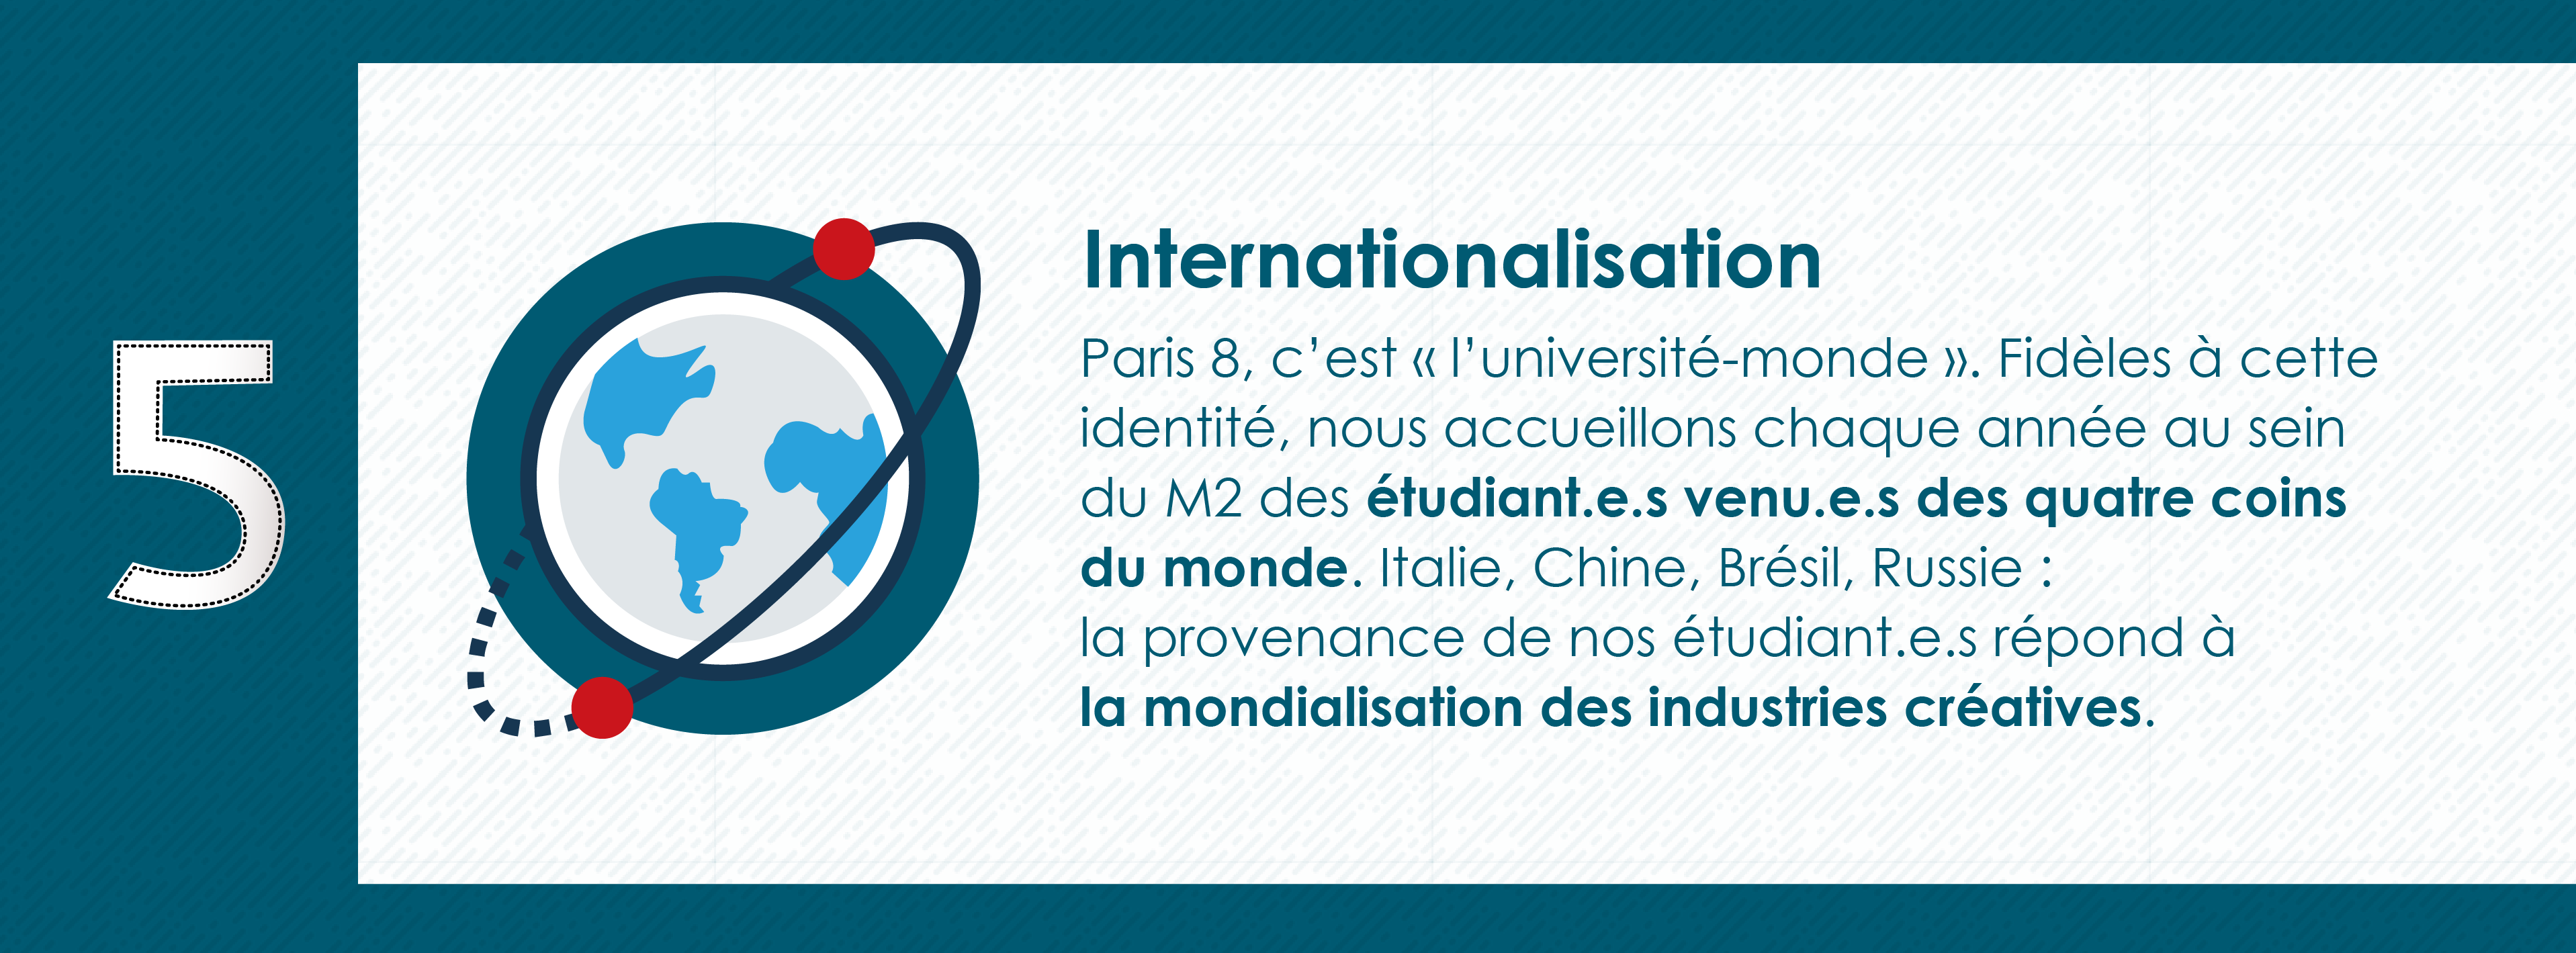 Pourquoi rejoindre le Master 2 Industrie Audiovisuelle de Paris 8 - Université Monde